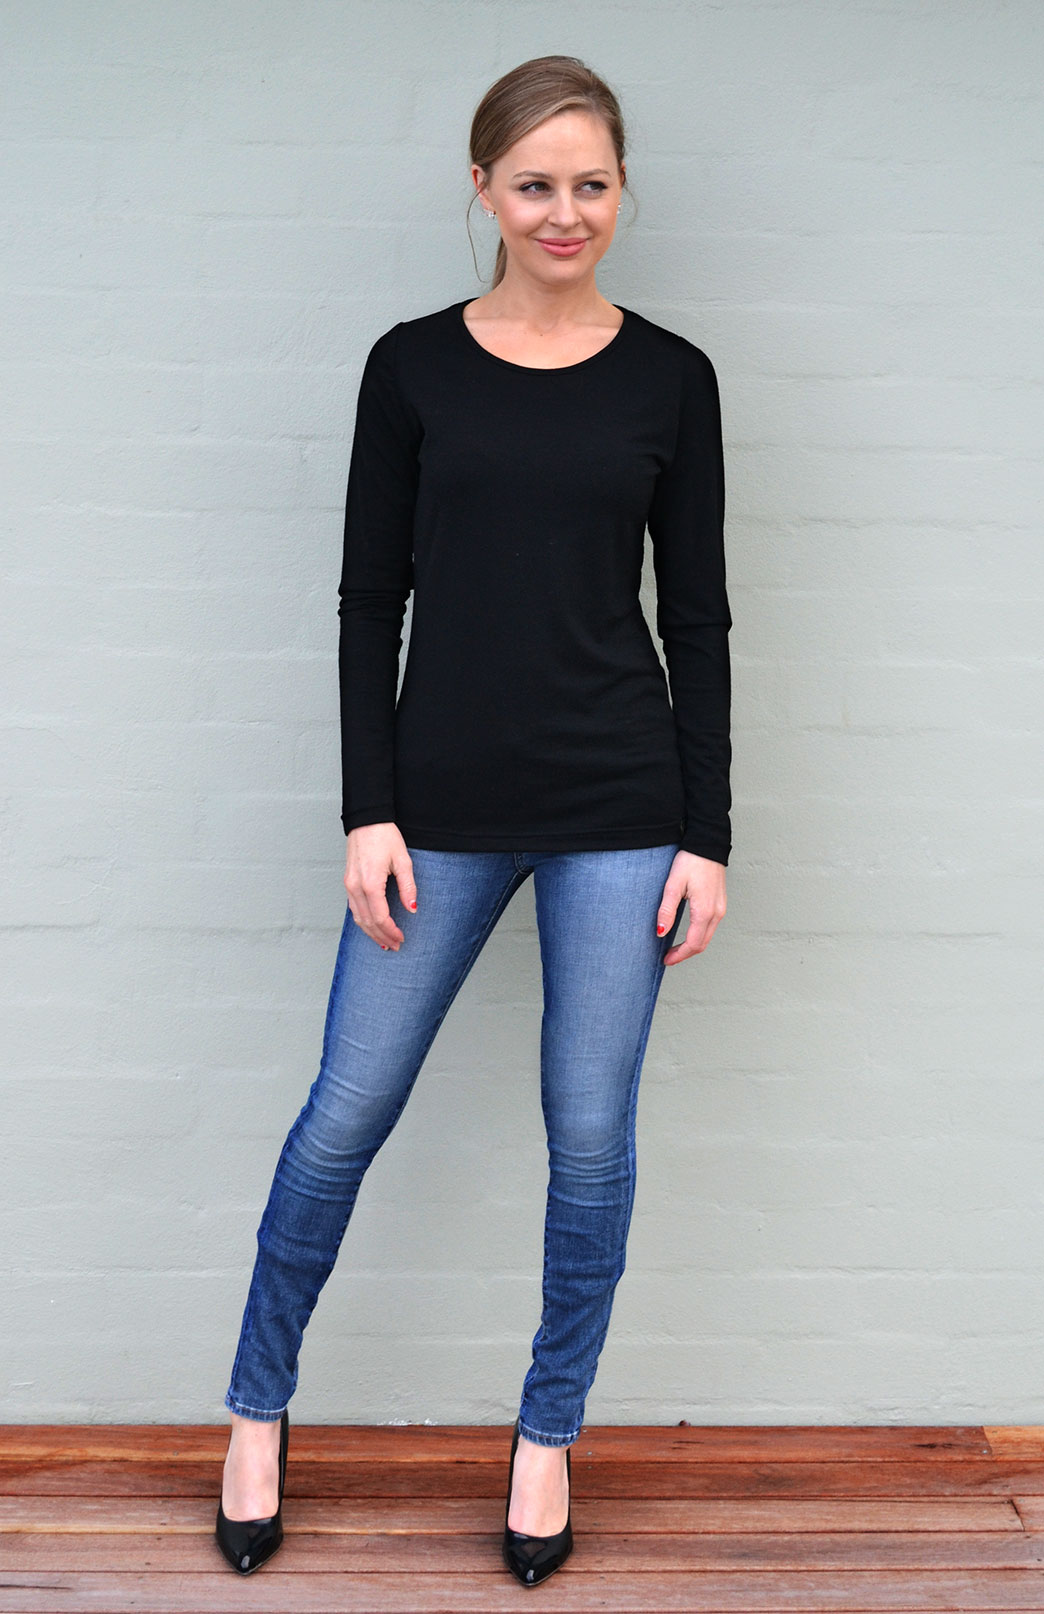 Round Neck Top - Plain - Women's Classic Black Long Sleeve Merino Wool Layering Fashion Top - Smitten Merino Tasmania Australia